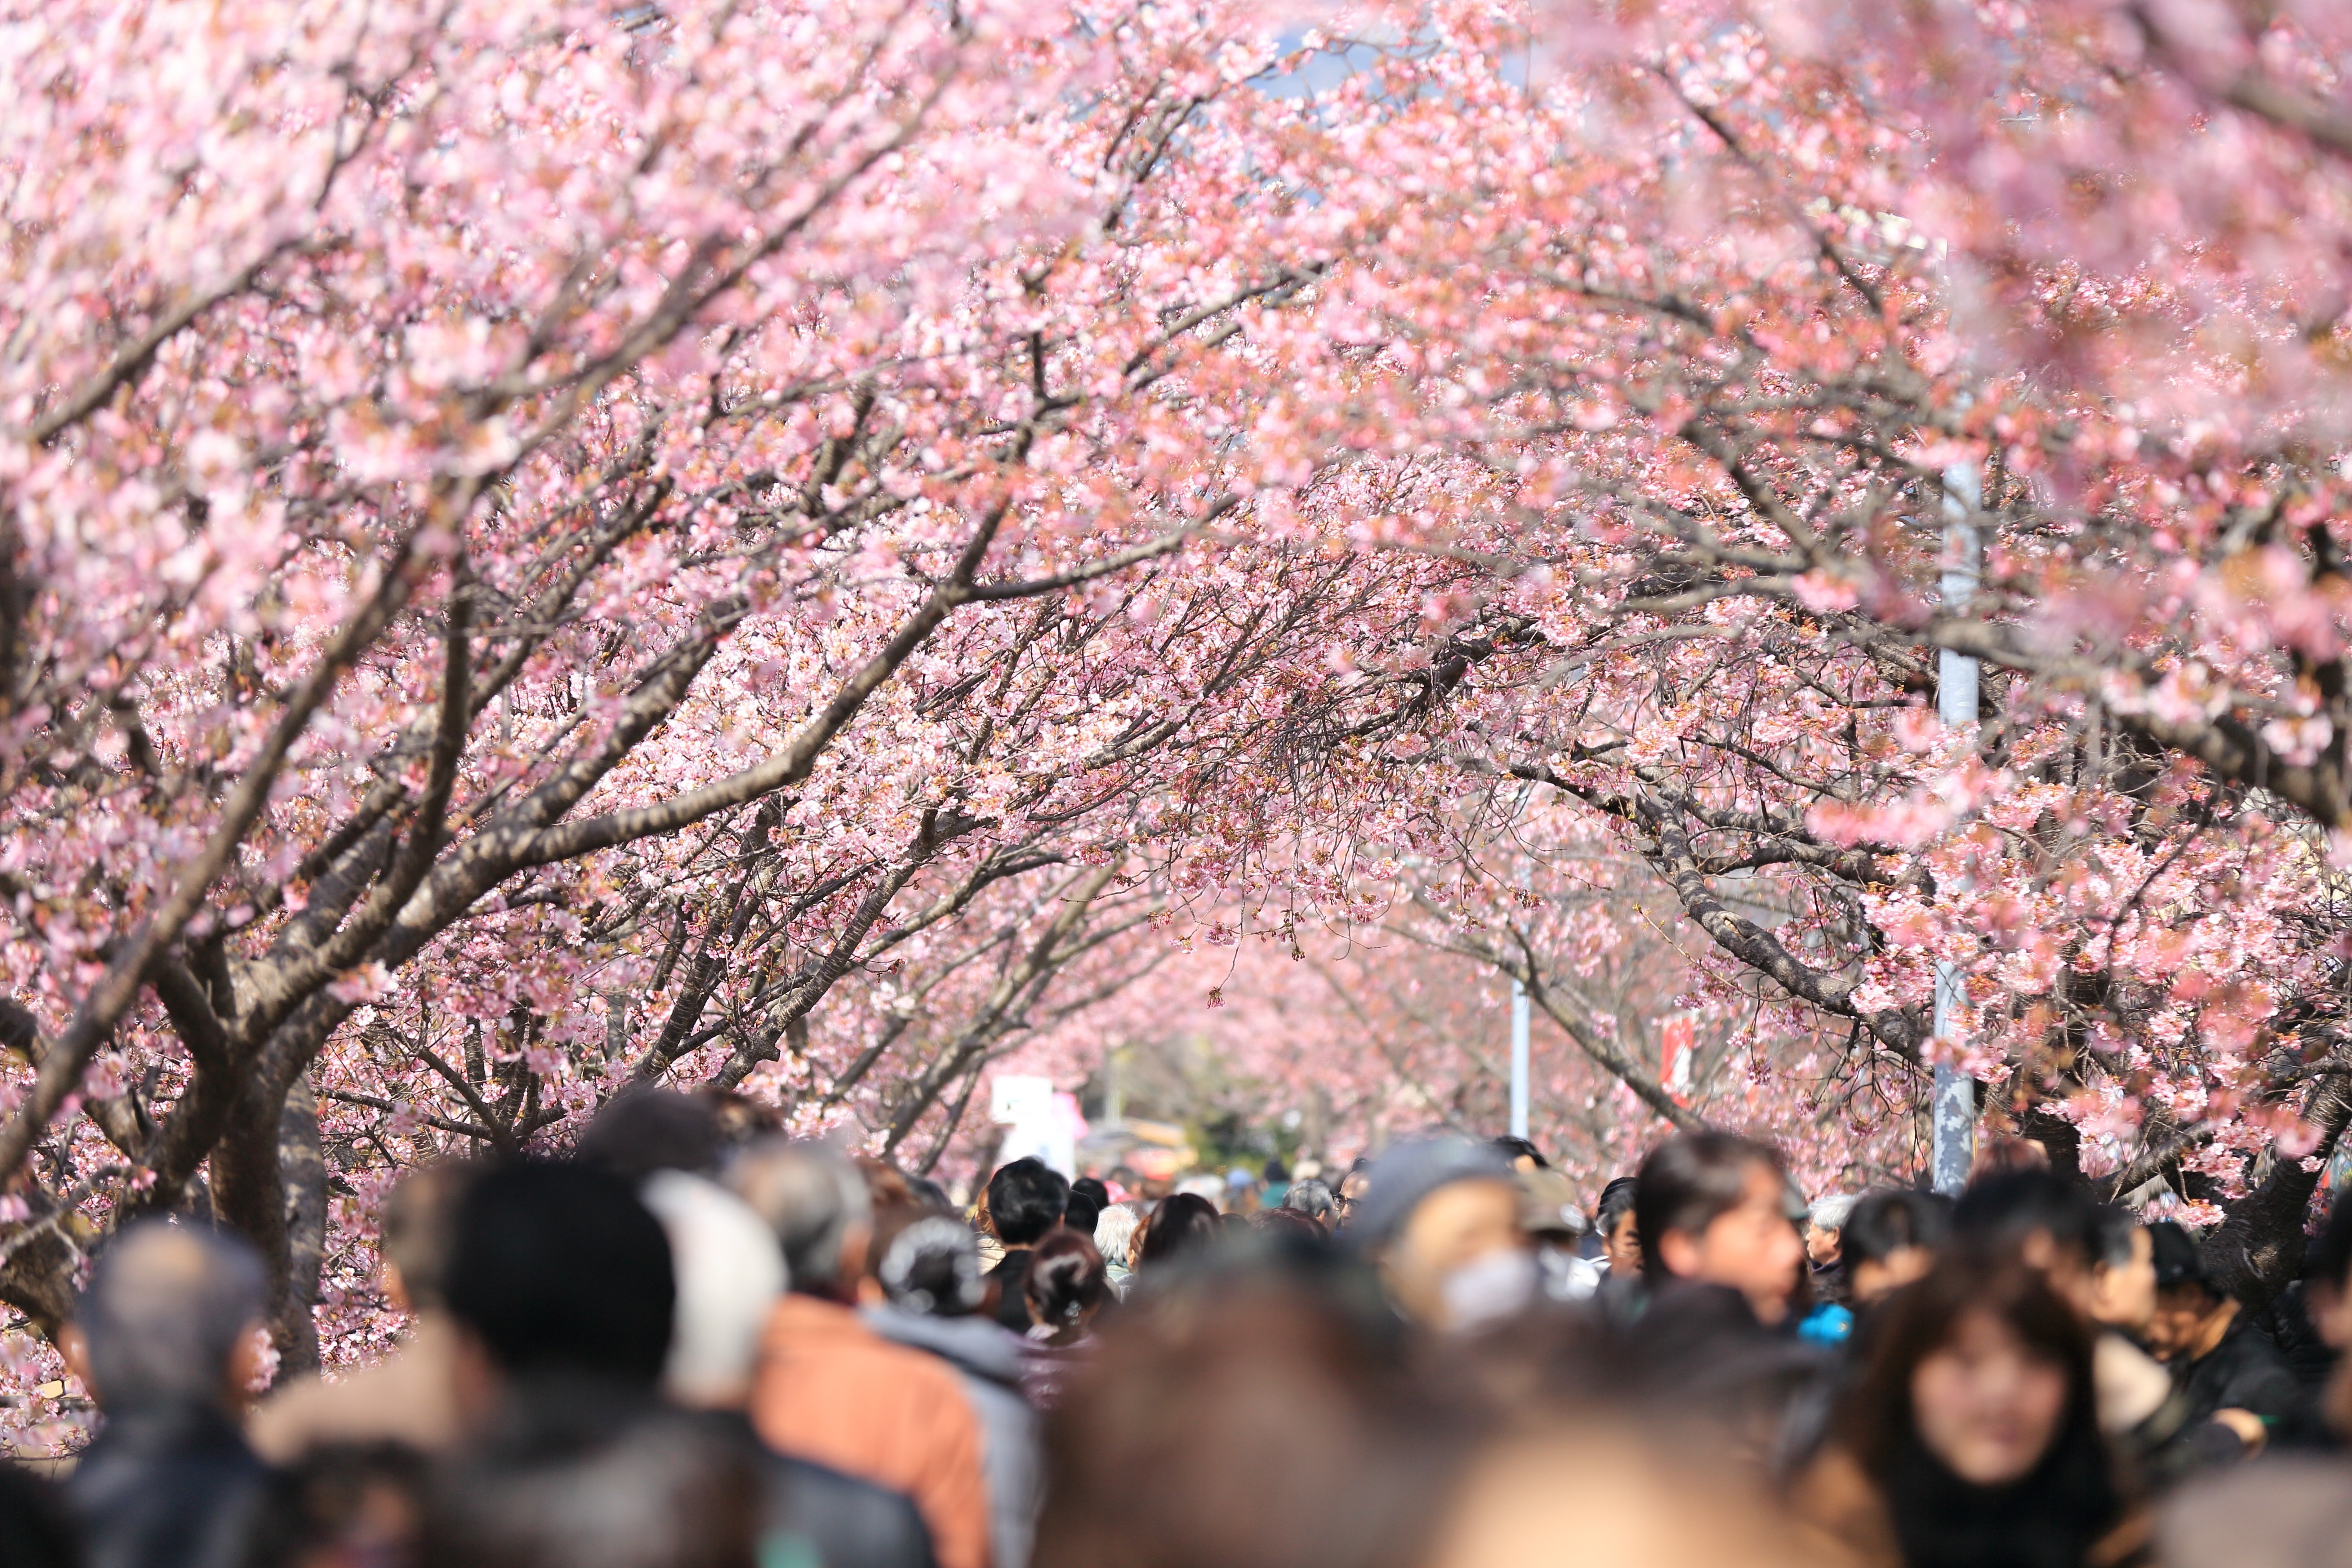 A crowd of people walking under pink cherry blossom trees in the spring